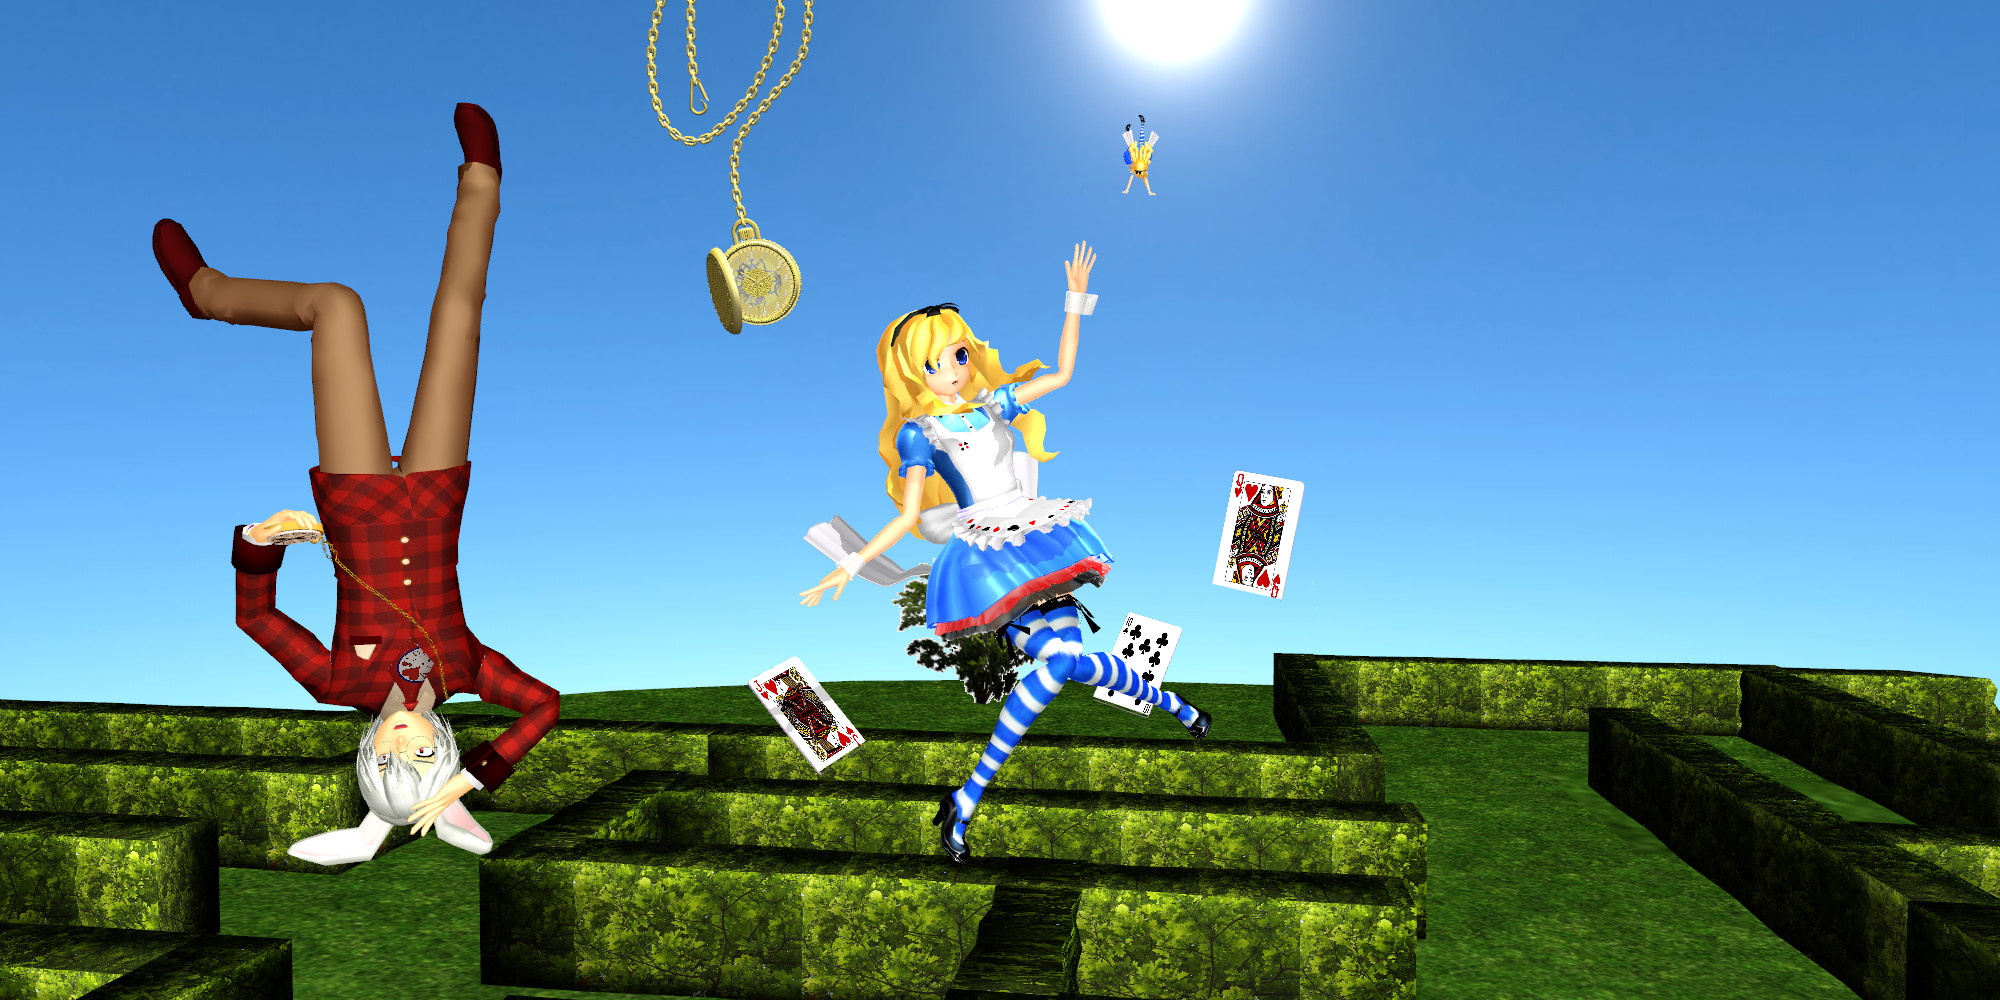 3d mmd bunny alice loves to squat